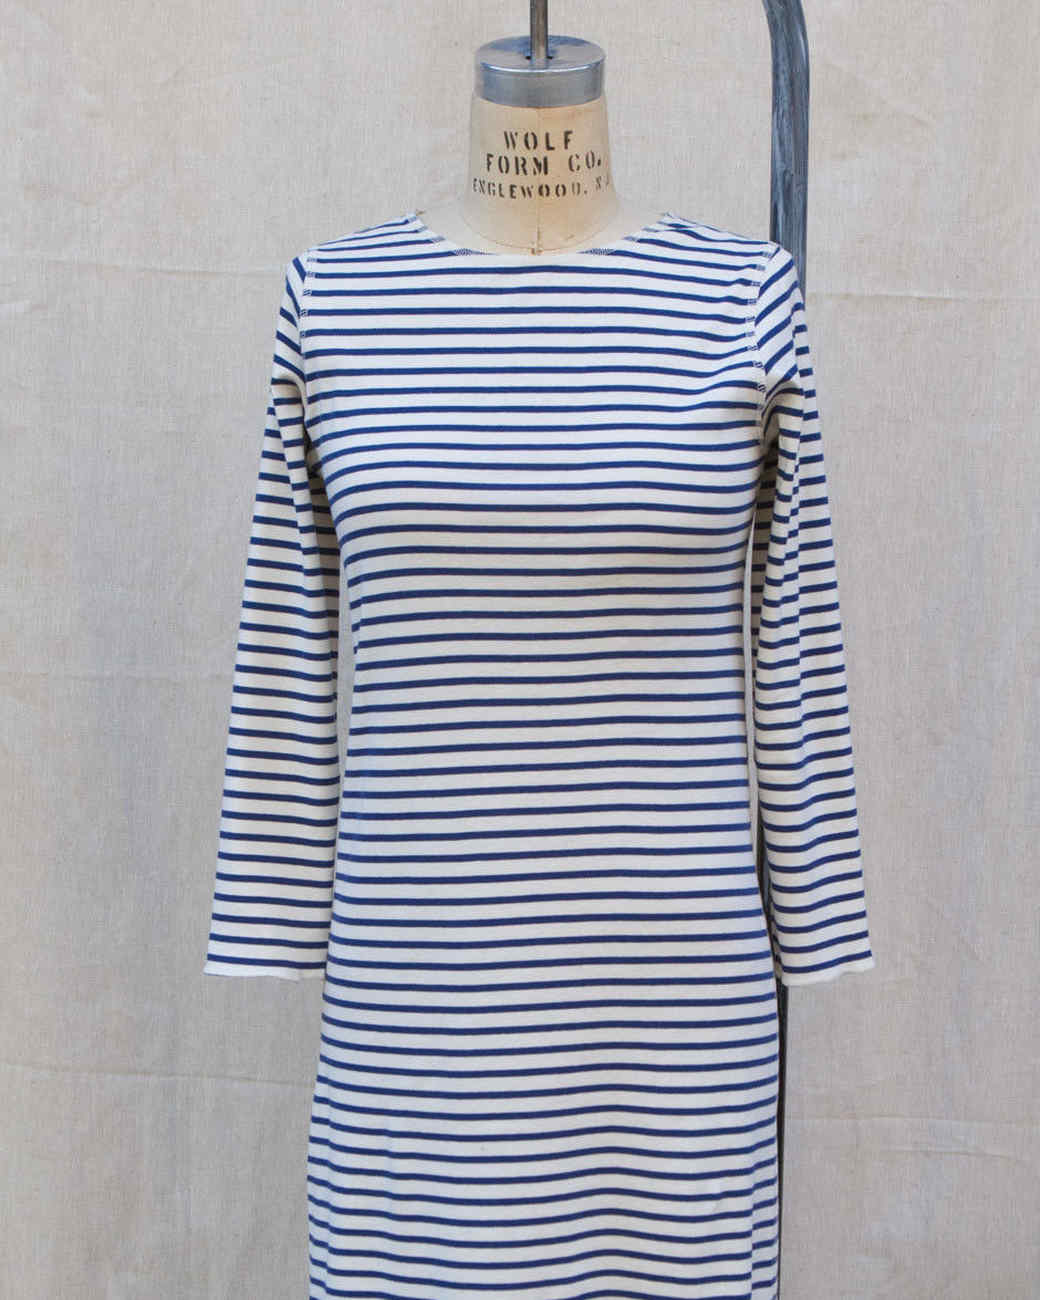 sailor-rose-stripe-tee-dress-natural-with-navy-stripes-1014.jpg